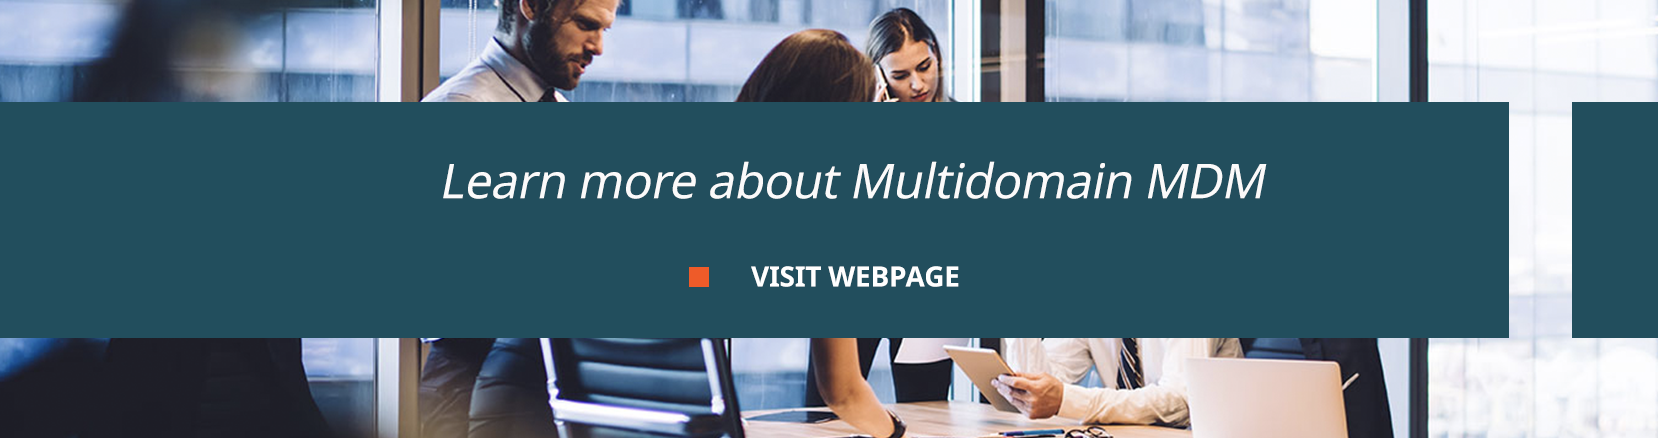 learn more about multidomain mdm